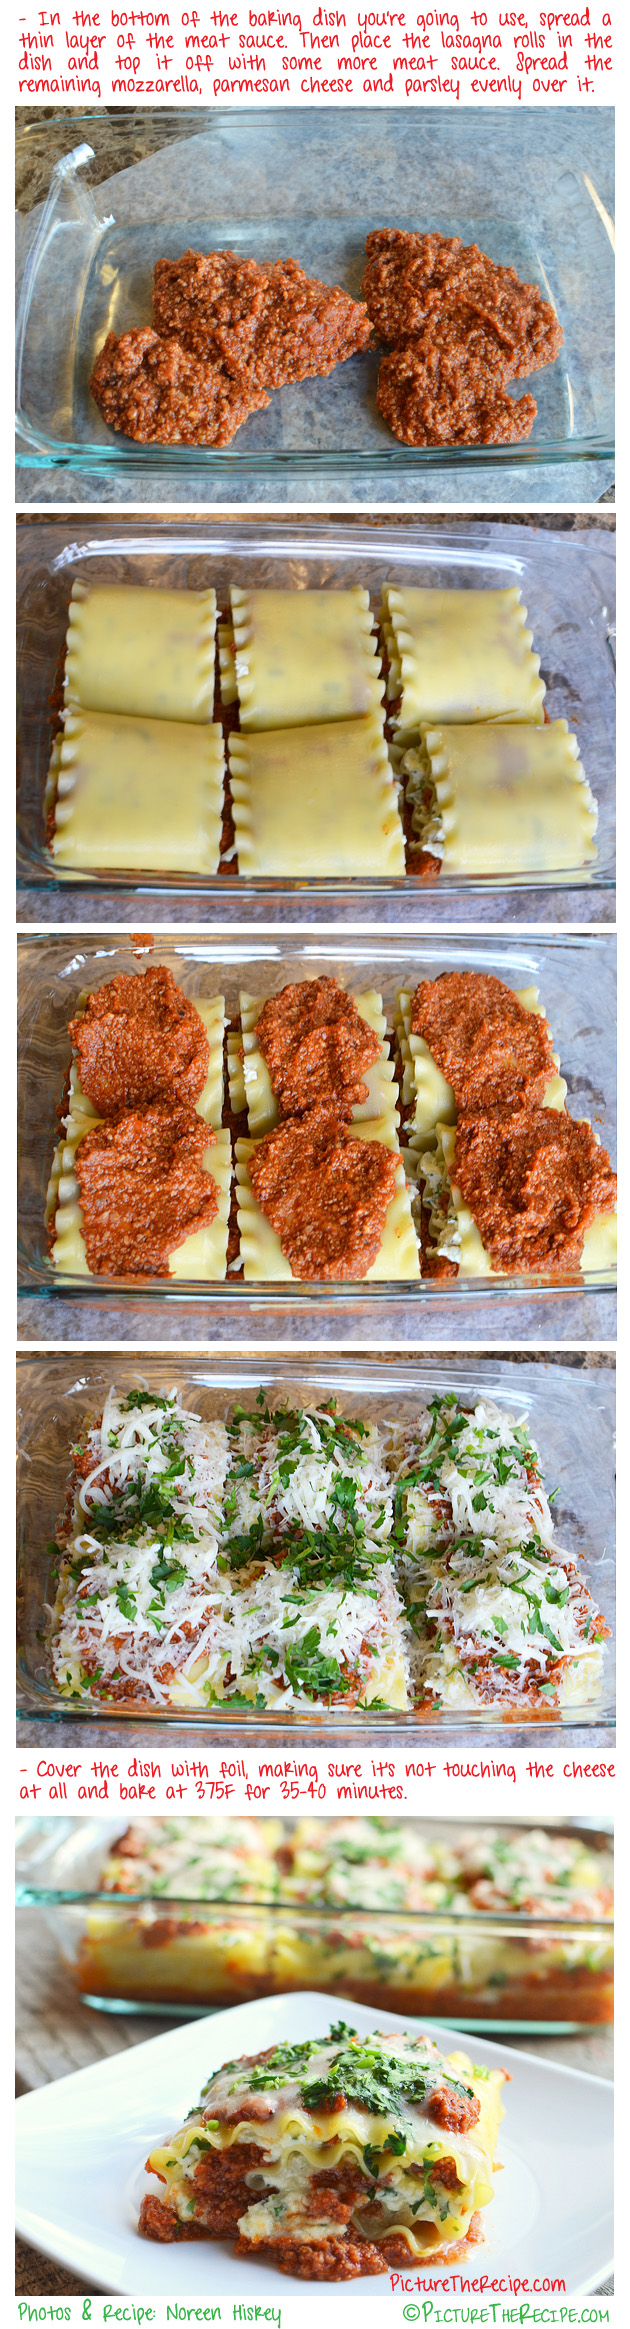 Lasagna Rolls Picture The Recipe